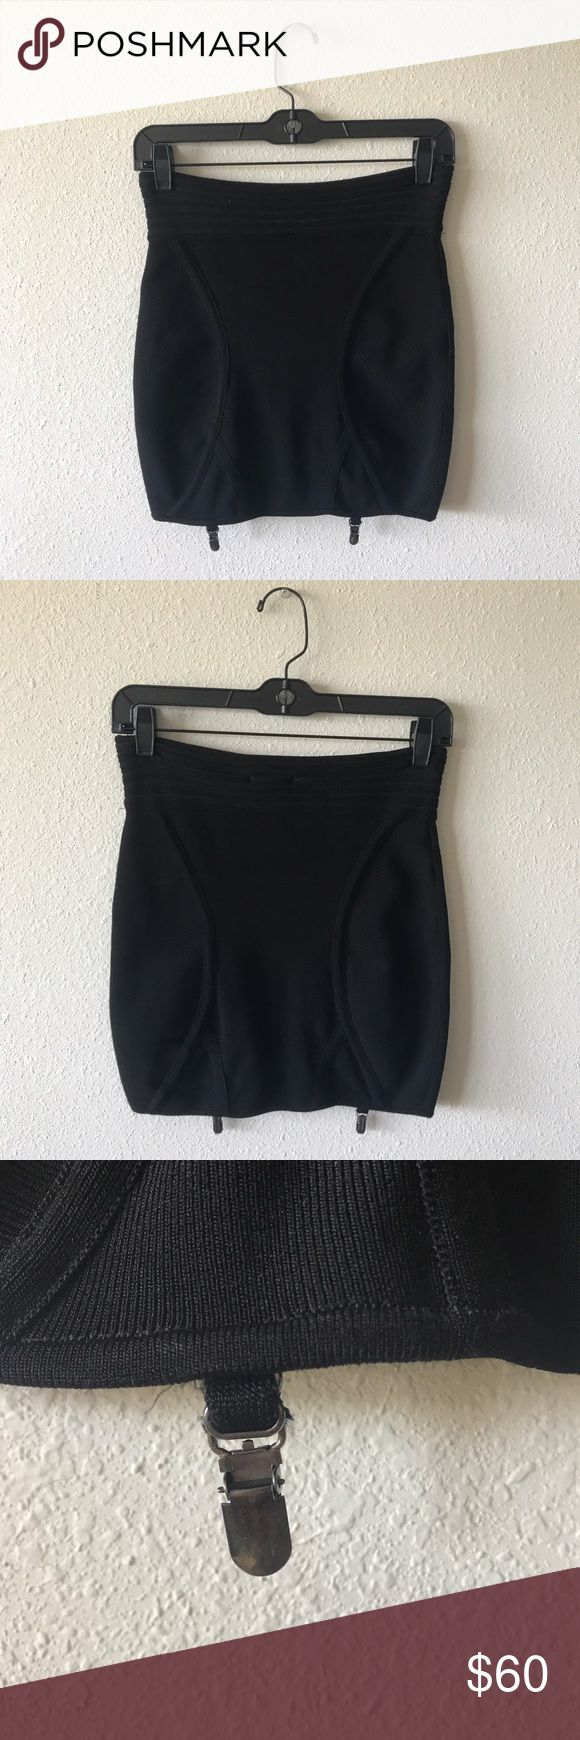 🌟SALE🌟 Black UO Bodycon Skirt Brand is Silence & Noise from UO. This skirt hits high on the waist and is made of a thick black material with clips for stockings! Super edgy and makes a statement when worn! Dress it up or down with a body suit or with a destroyed tee and combat boots. Flattering and flirty! Urban Outfitters Skirts Mini